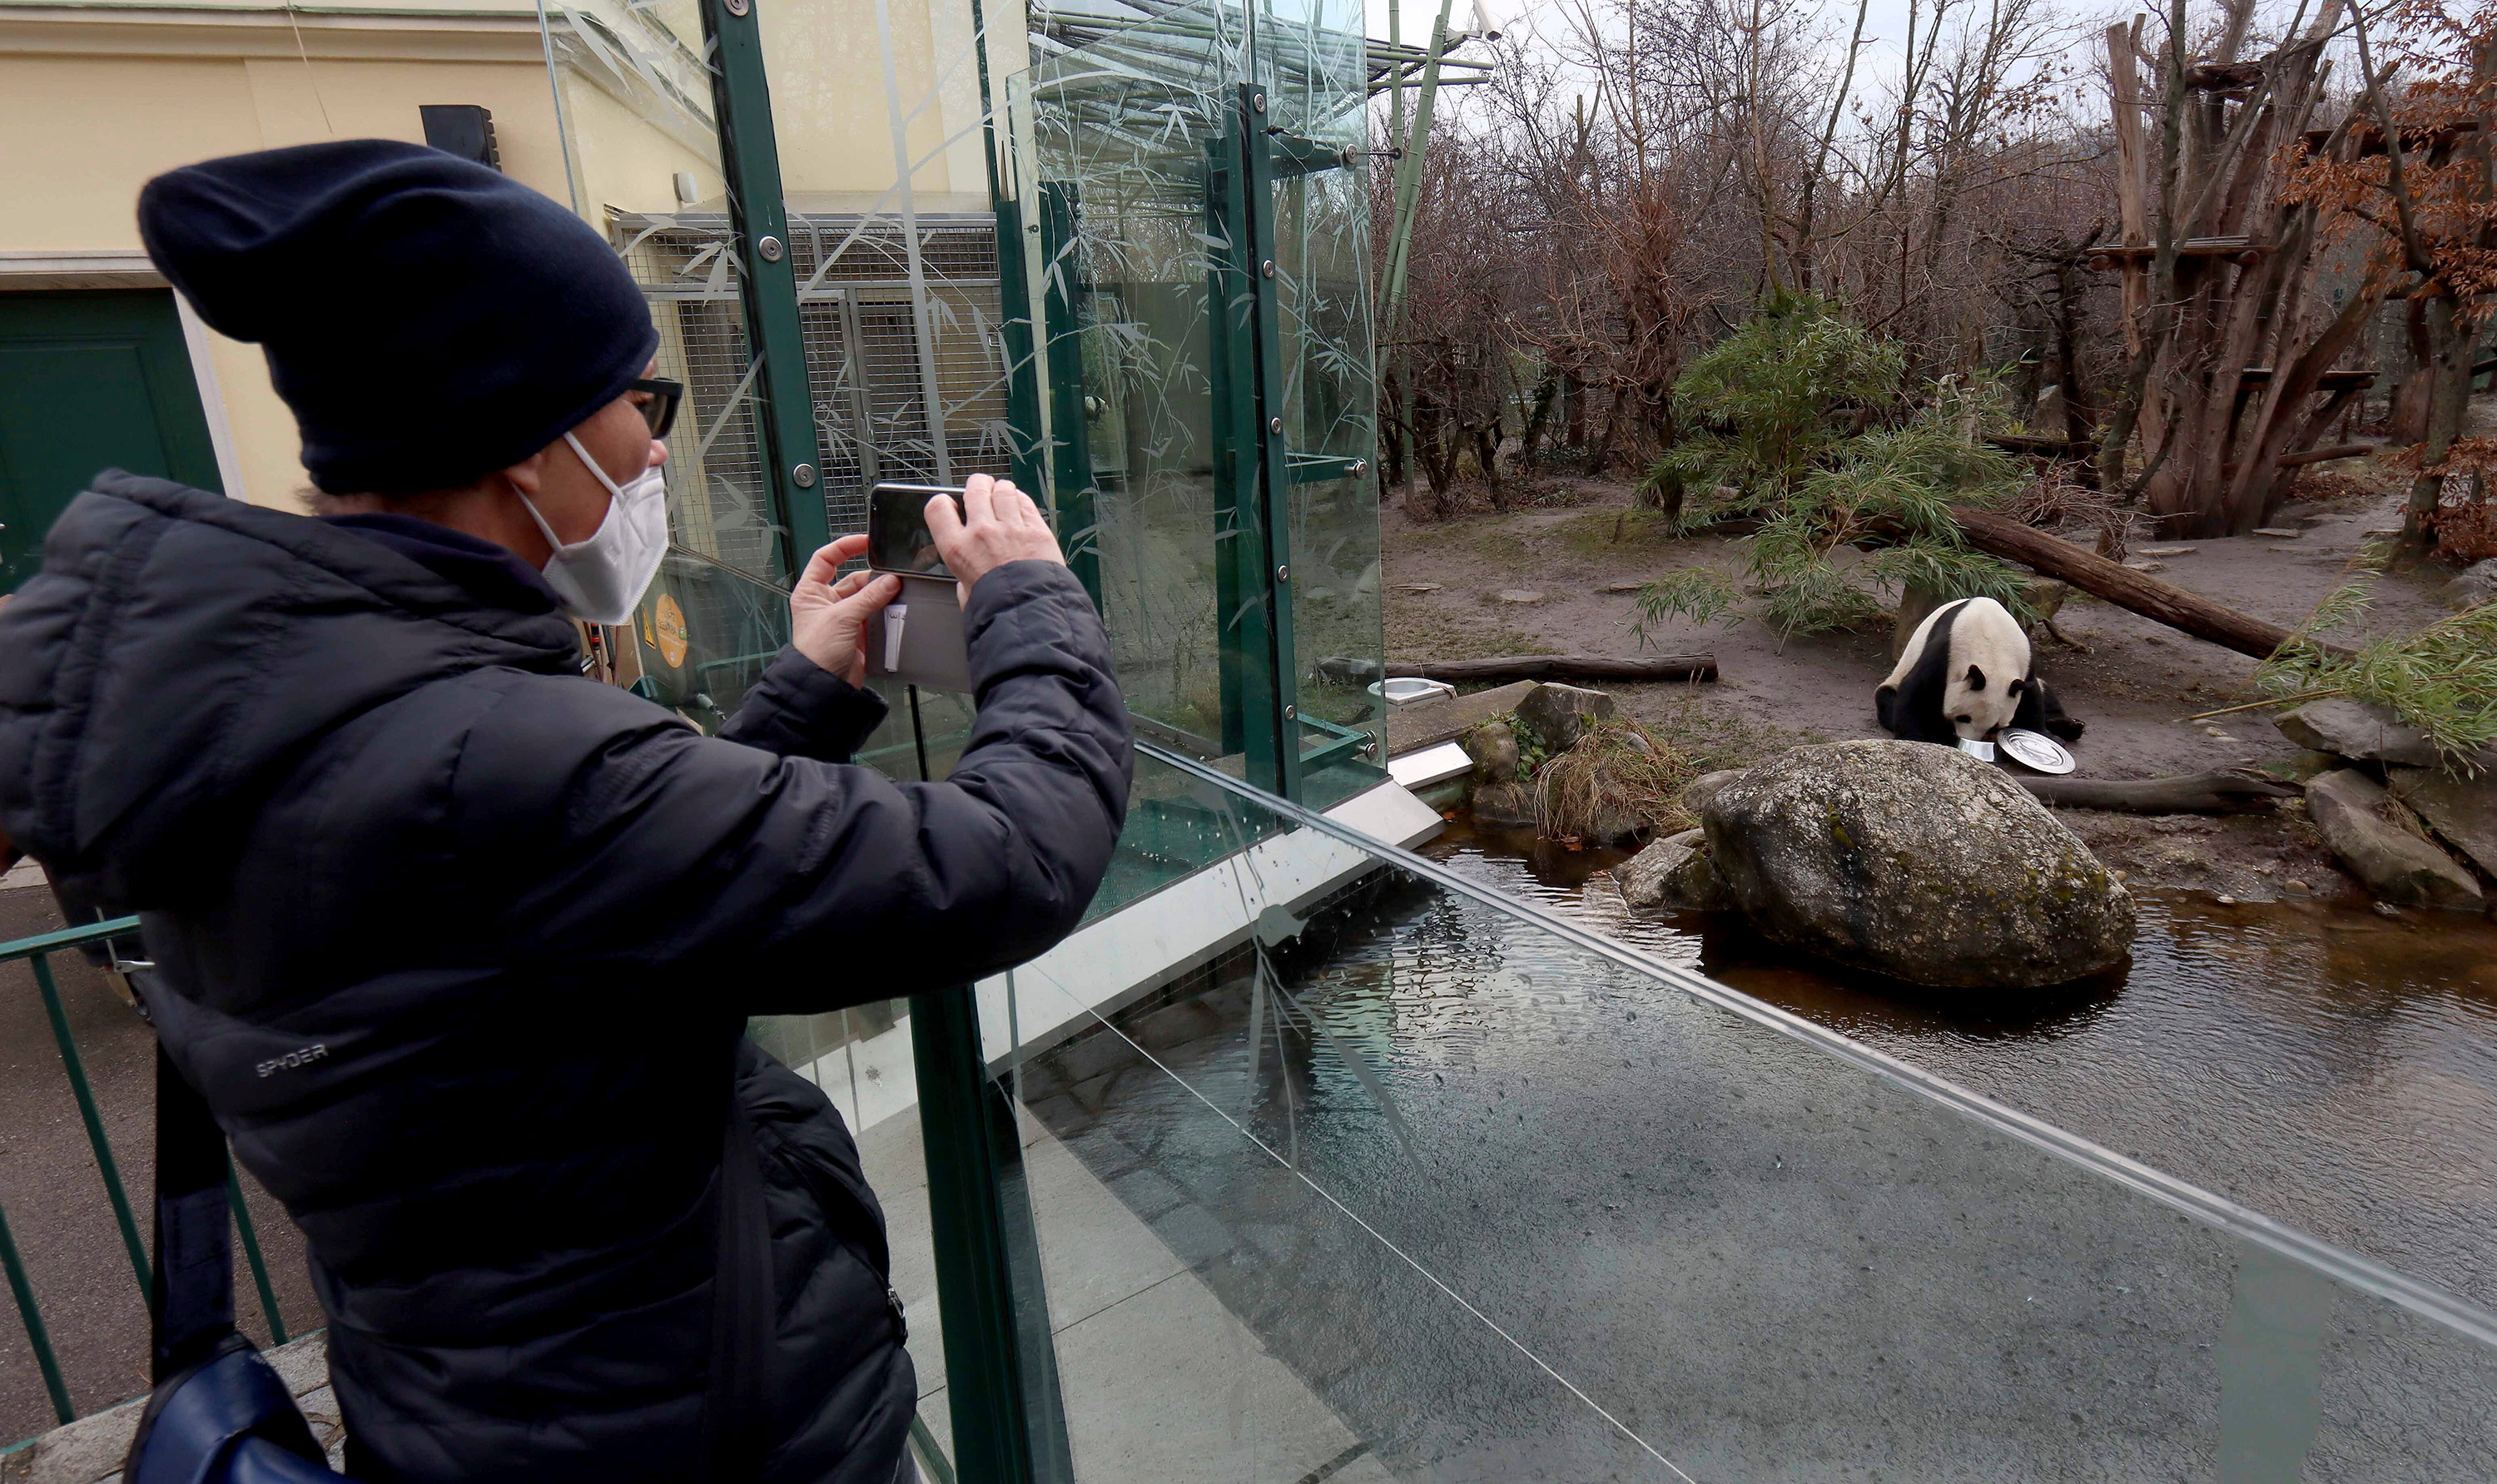 A visitor observes a panda at the Schoenbrunn Zoo in Vienna, Austria, on February 8.